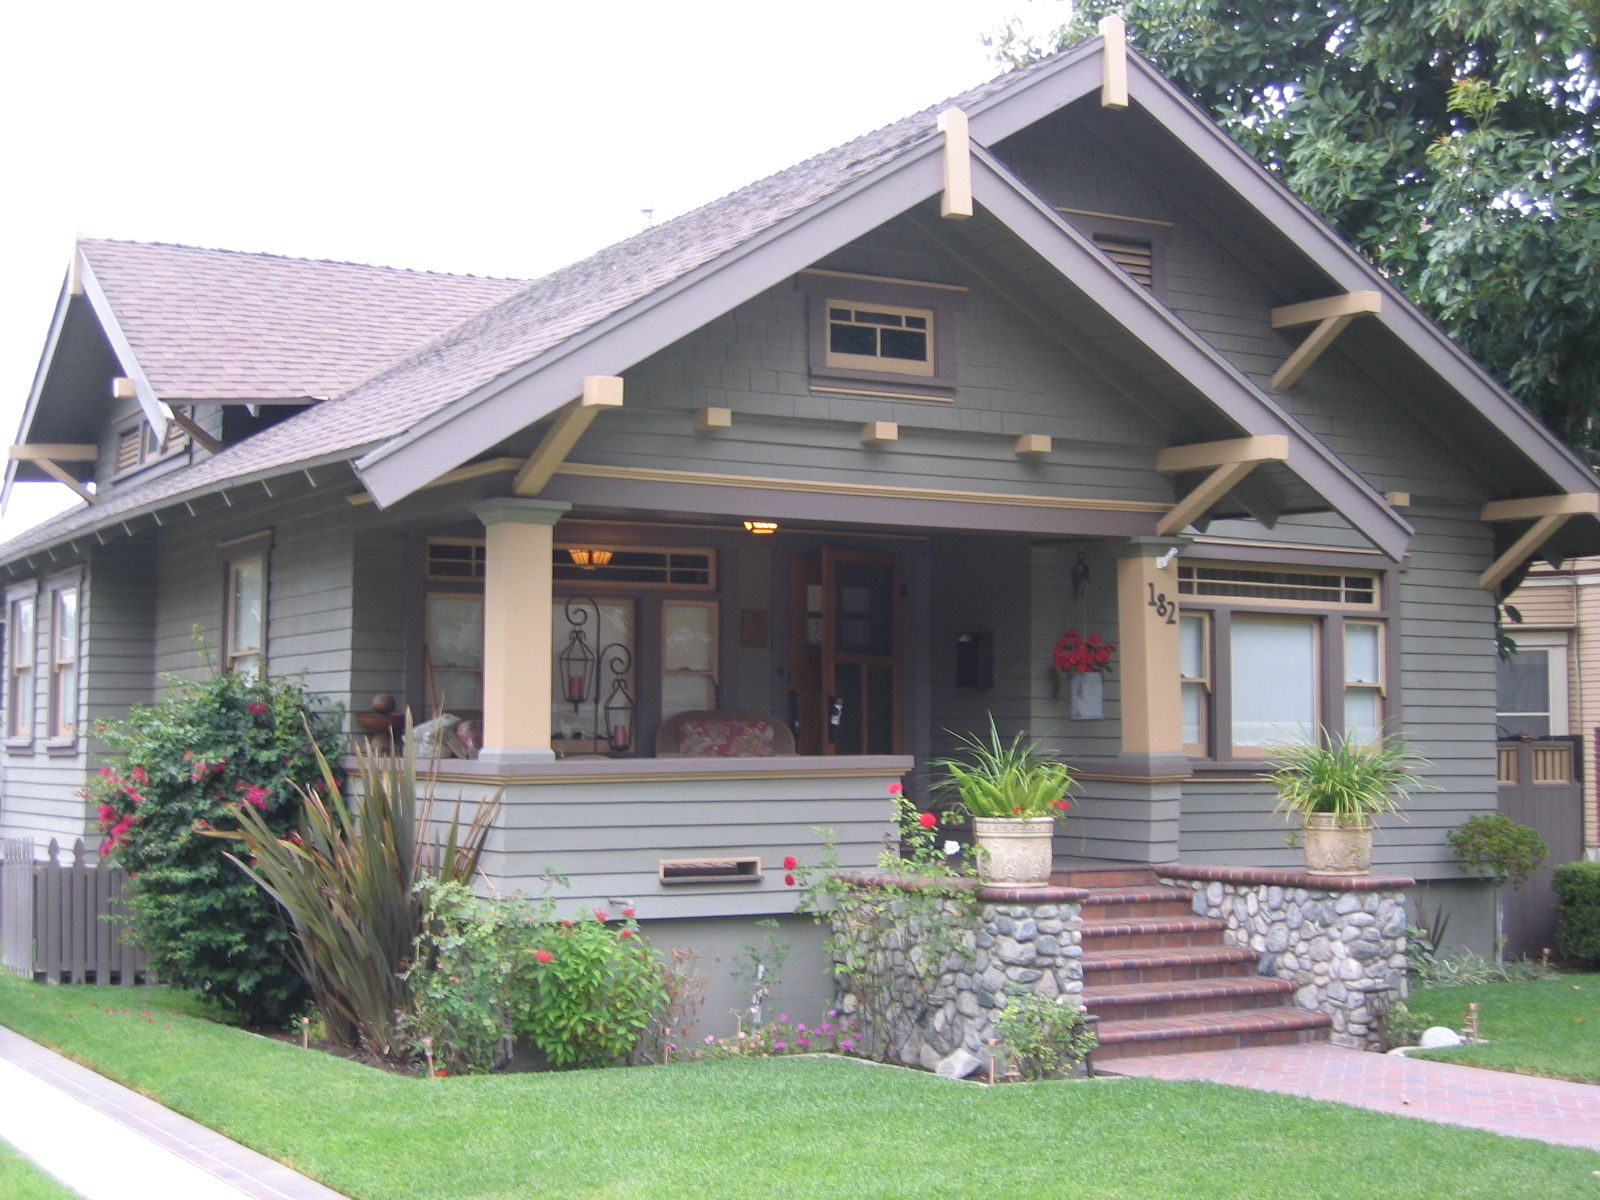 Craftsman house pictures craftsman home style sight for Craftsman houses photos